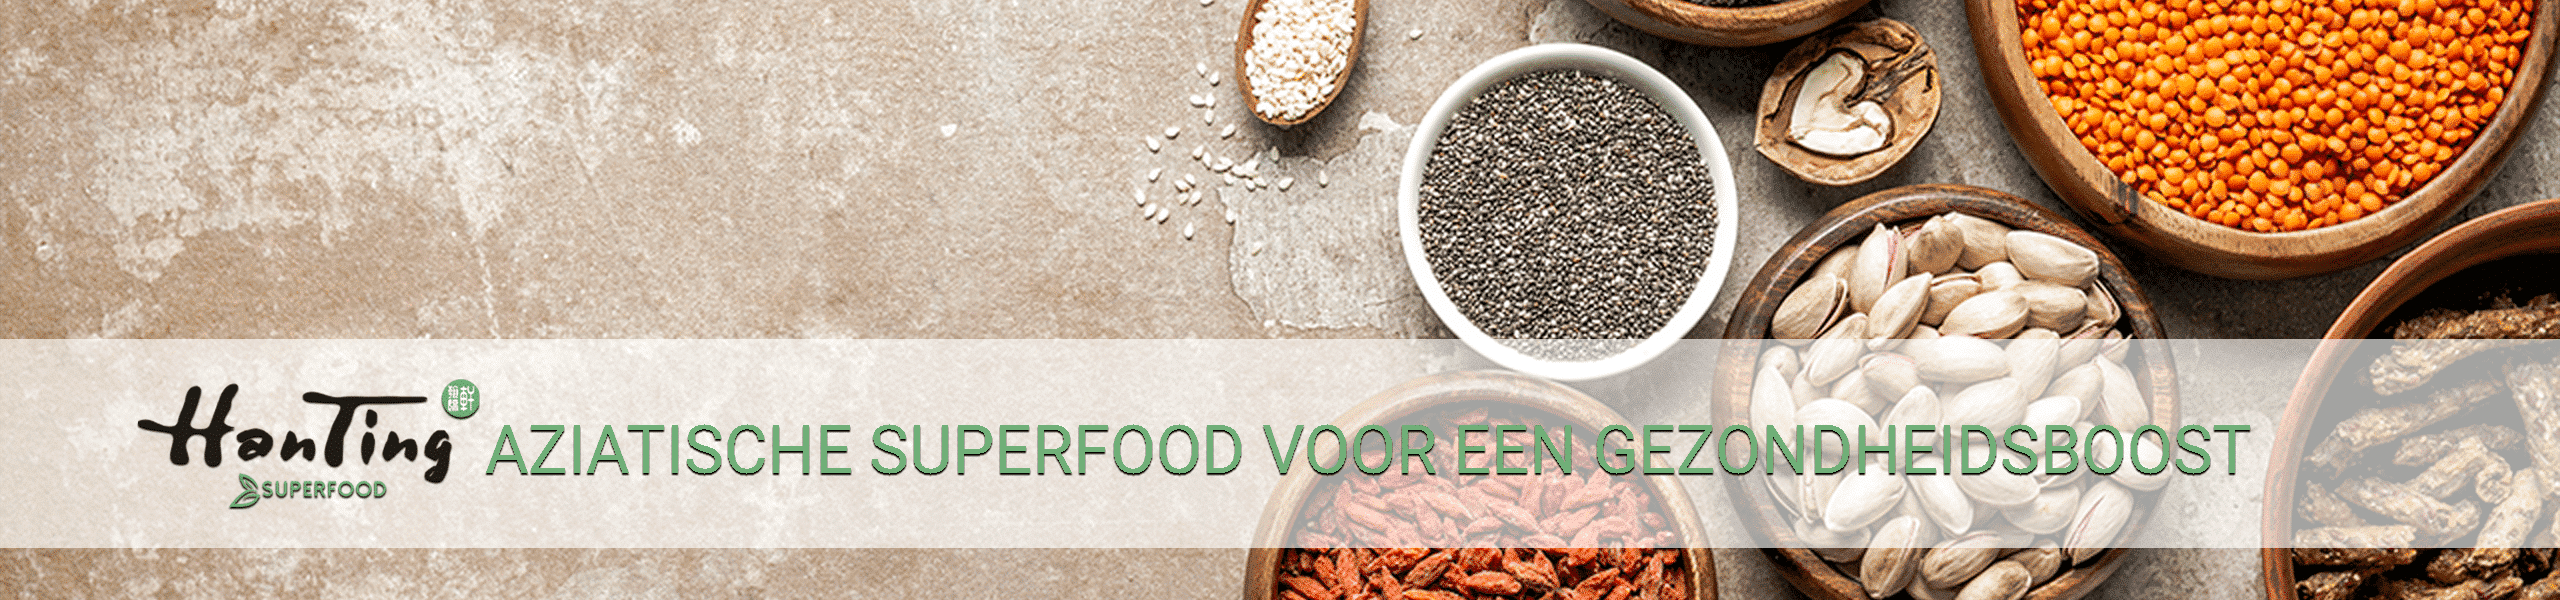 Header superfood 3